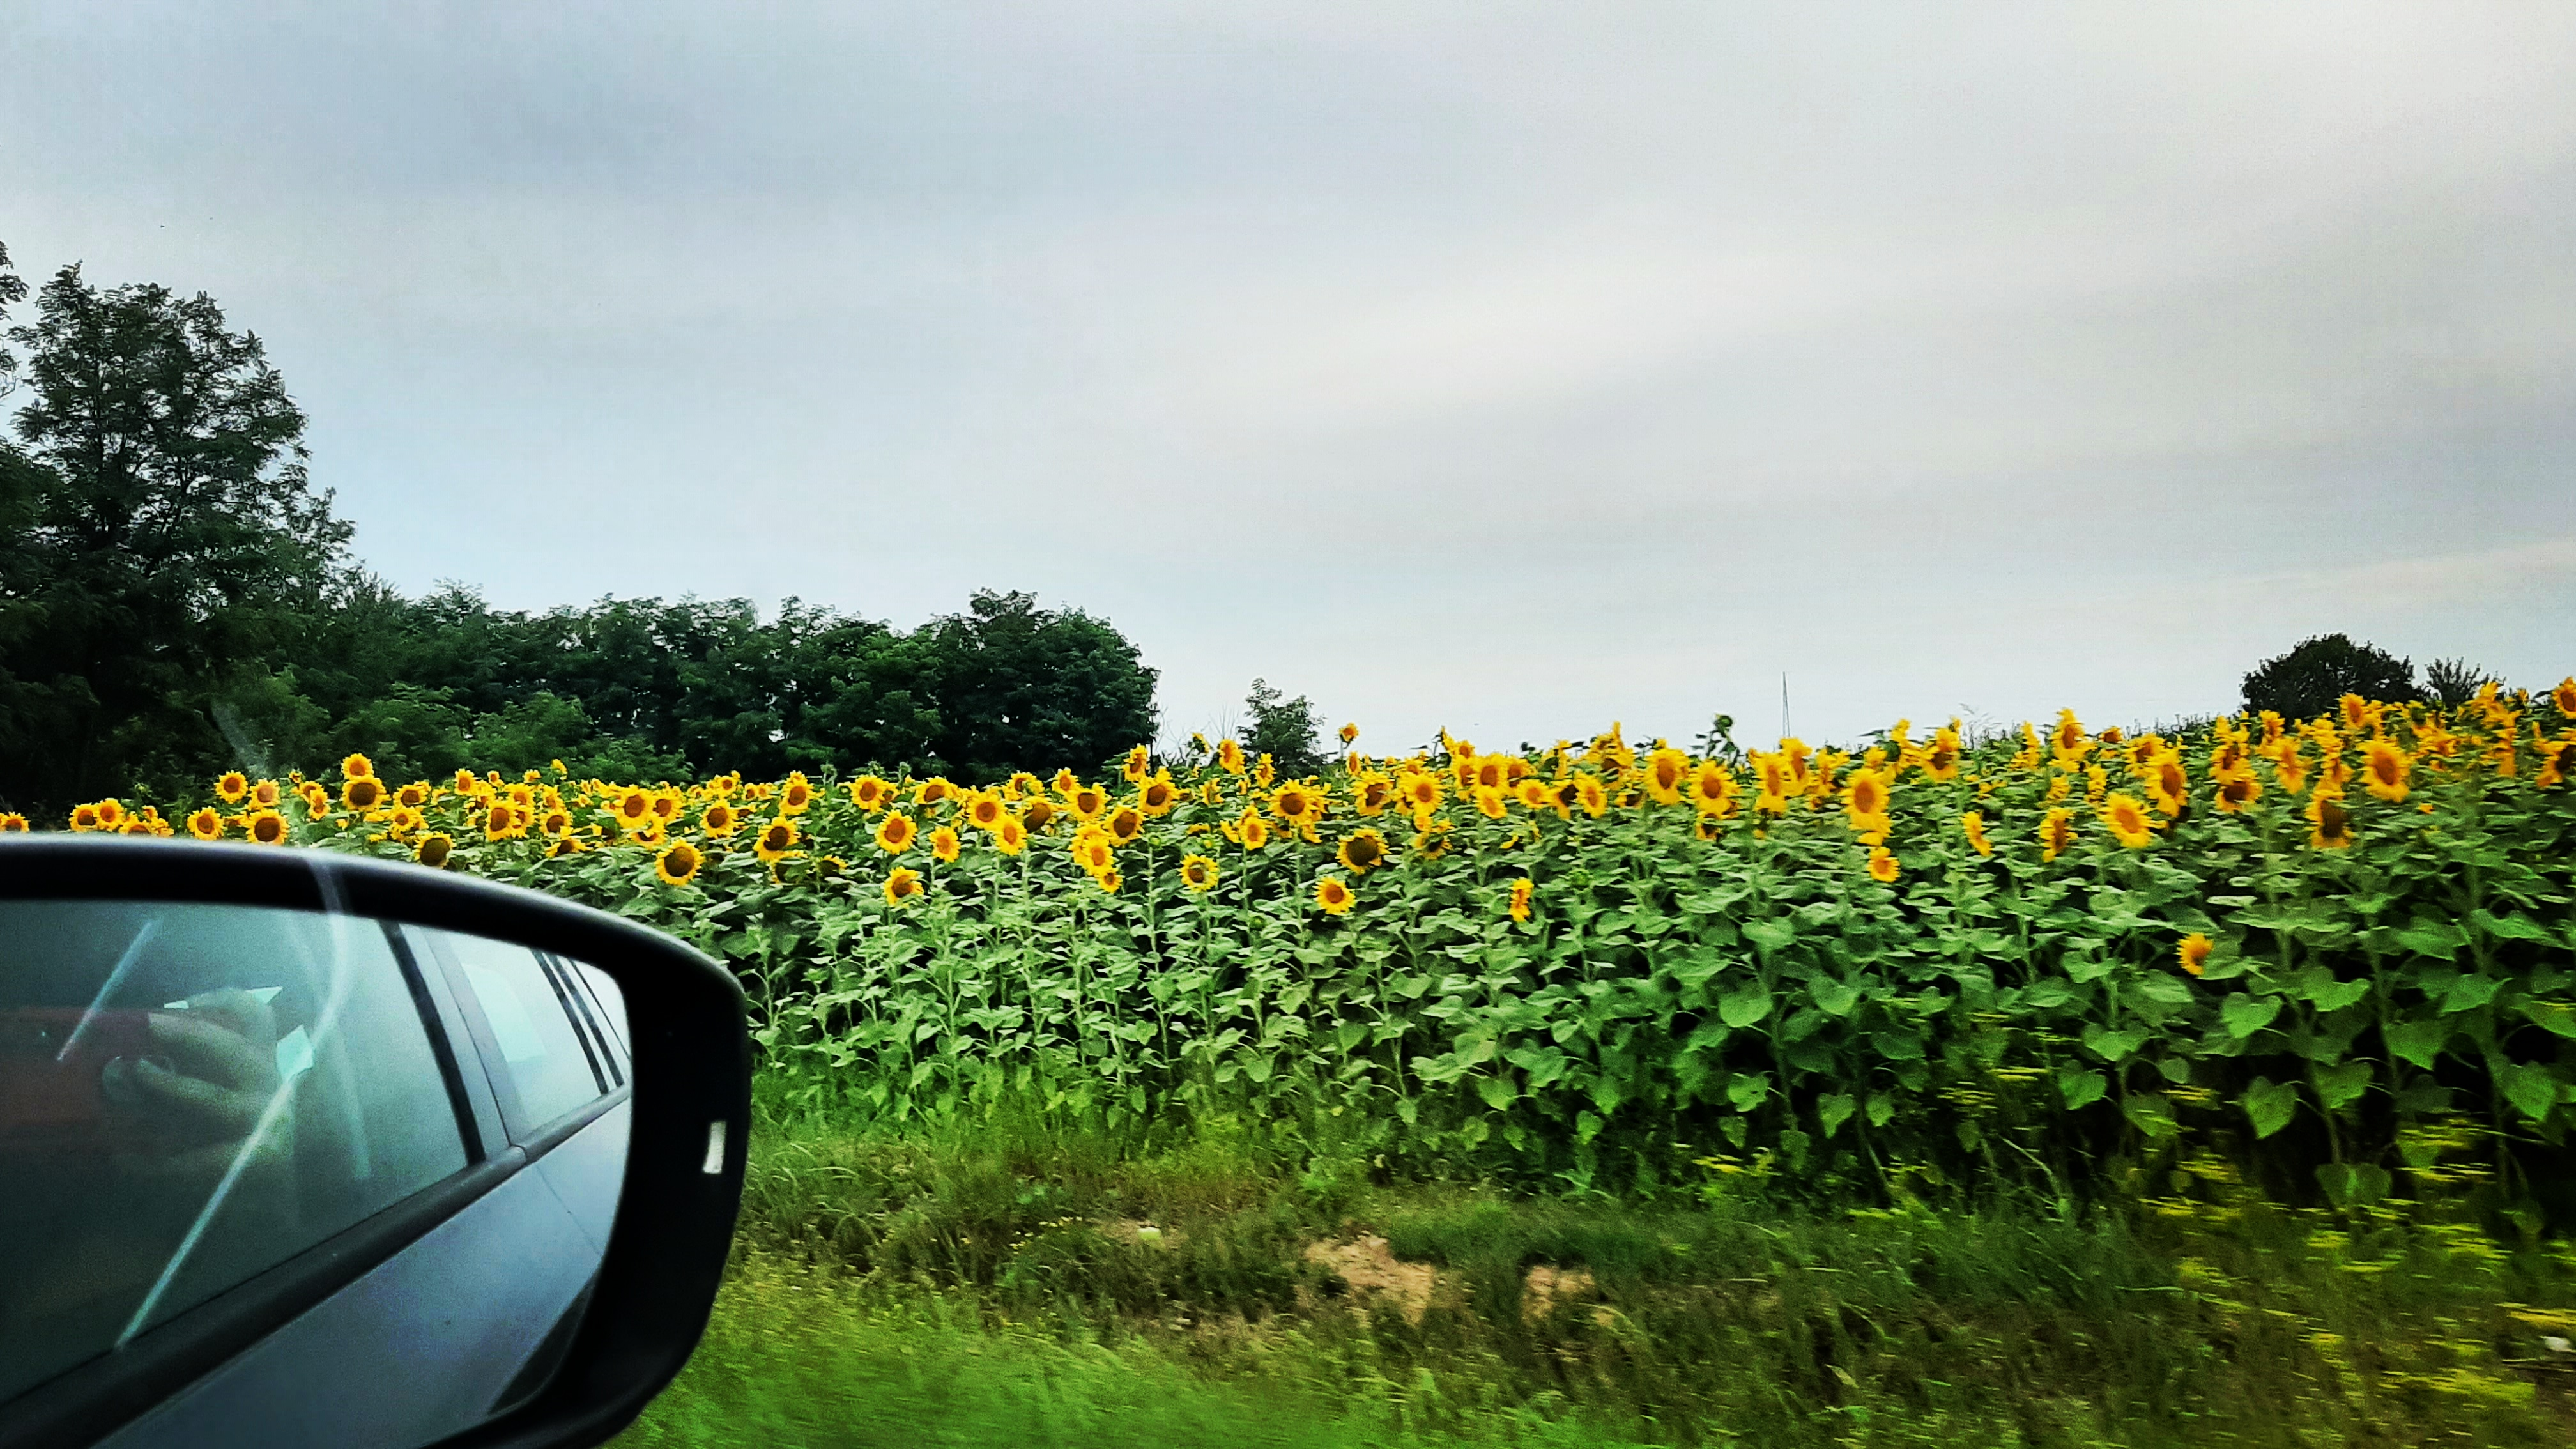 Driving through Slavonija in summer means driving through fields full of sunflowers